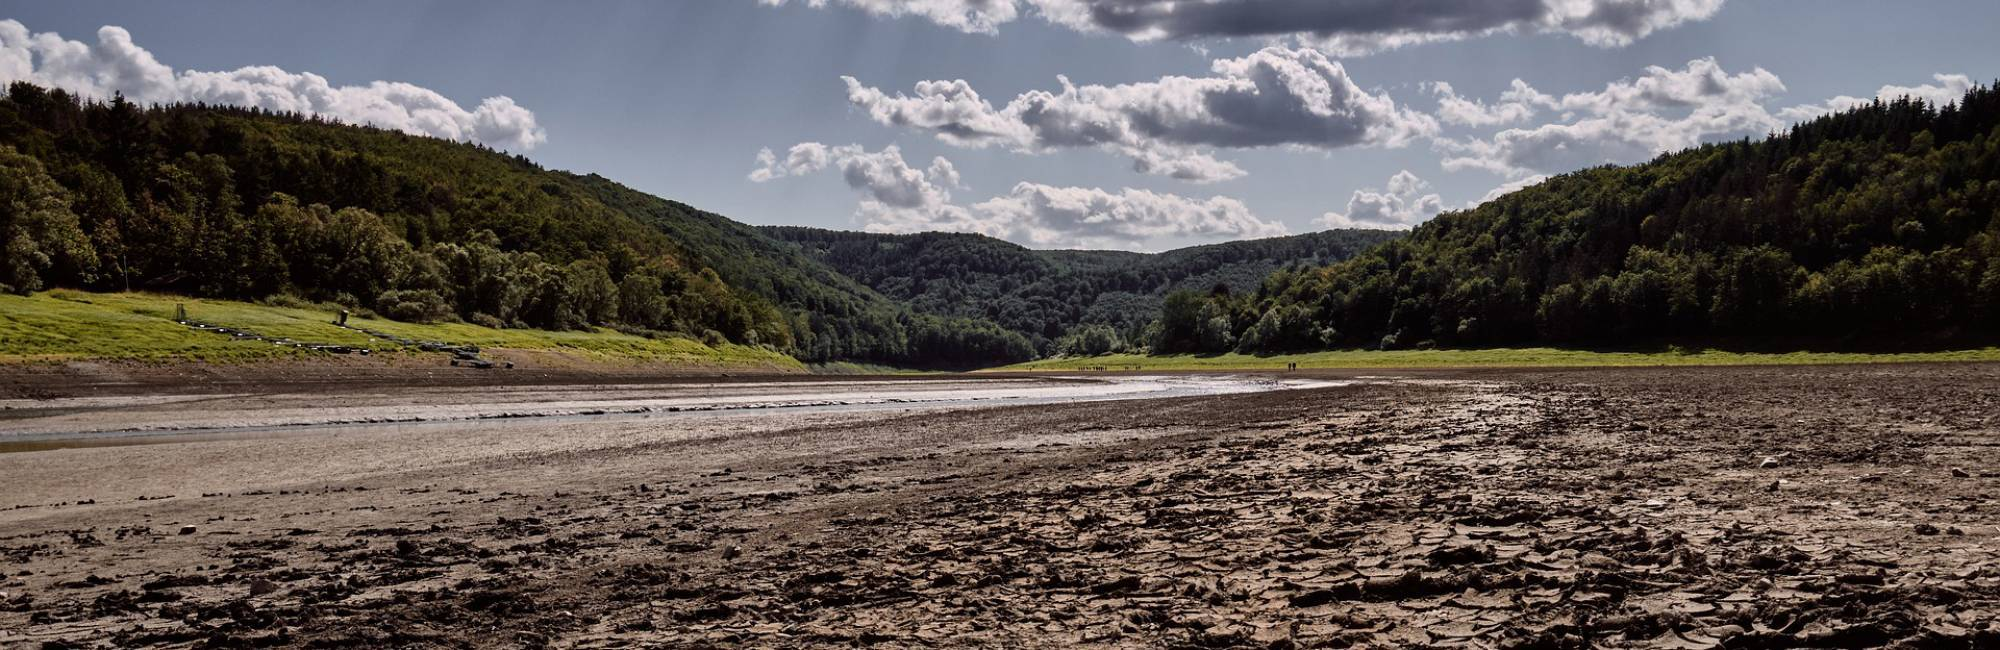 Panoramic photo of a dry riverbed with a hill and trees in the background.